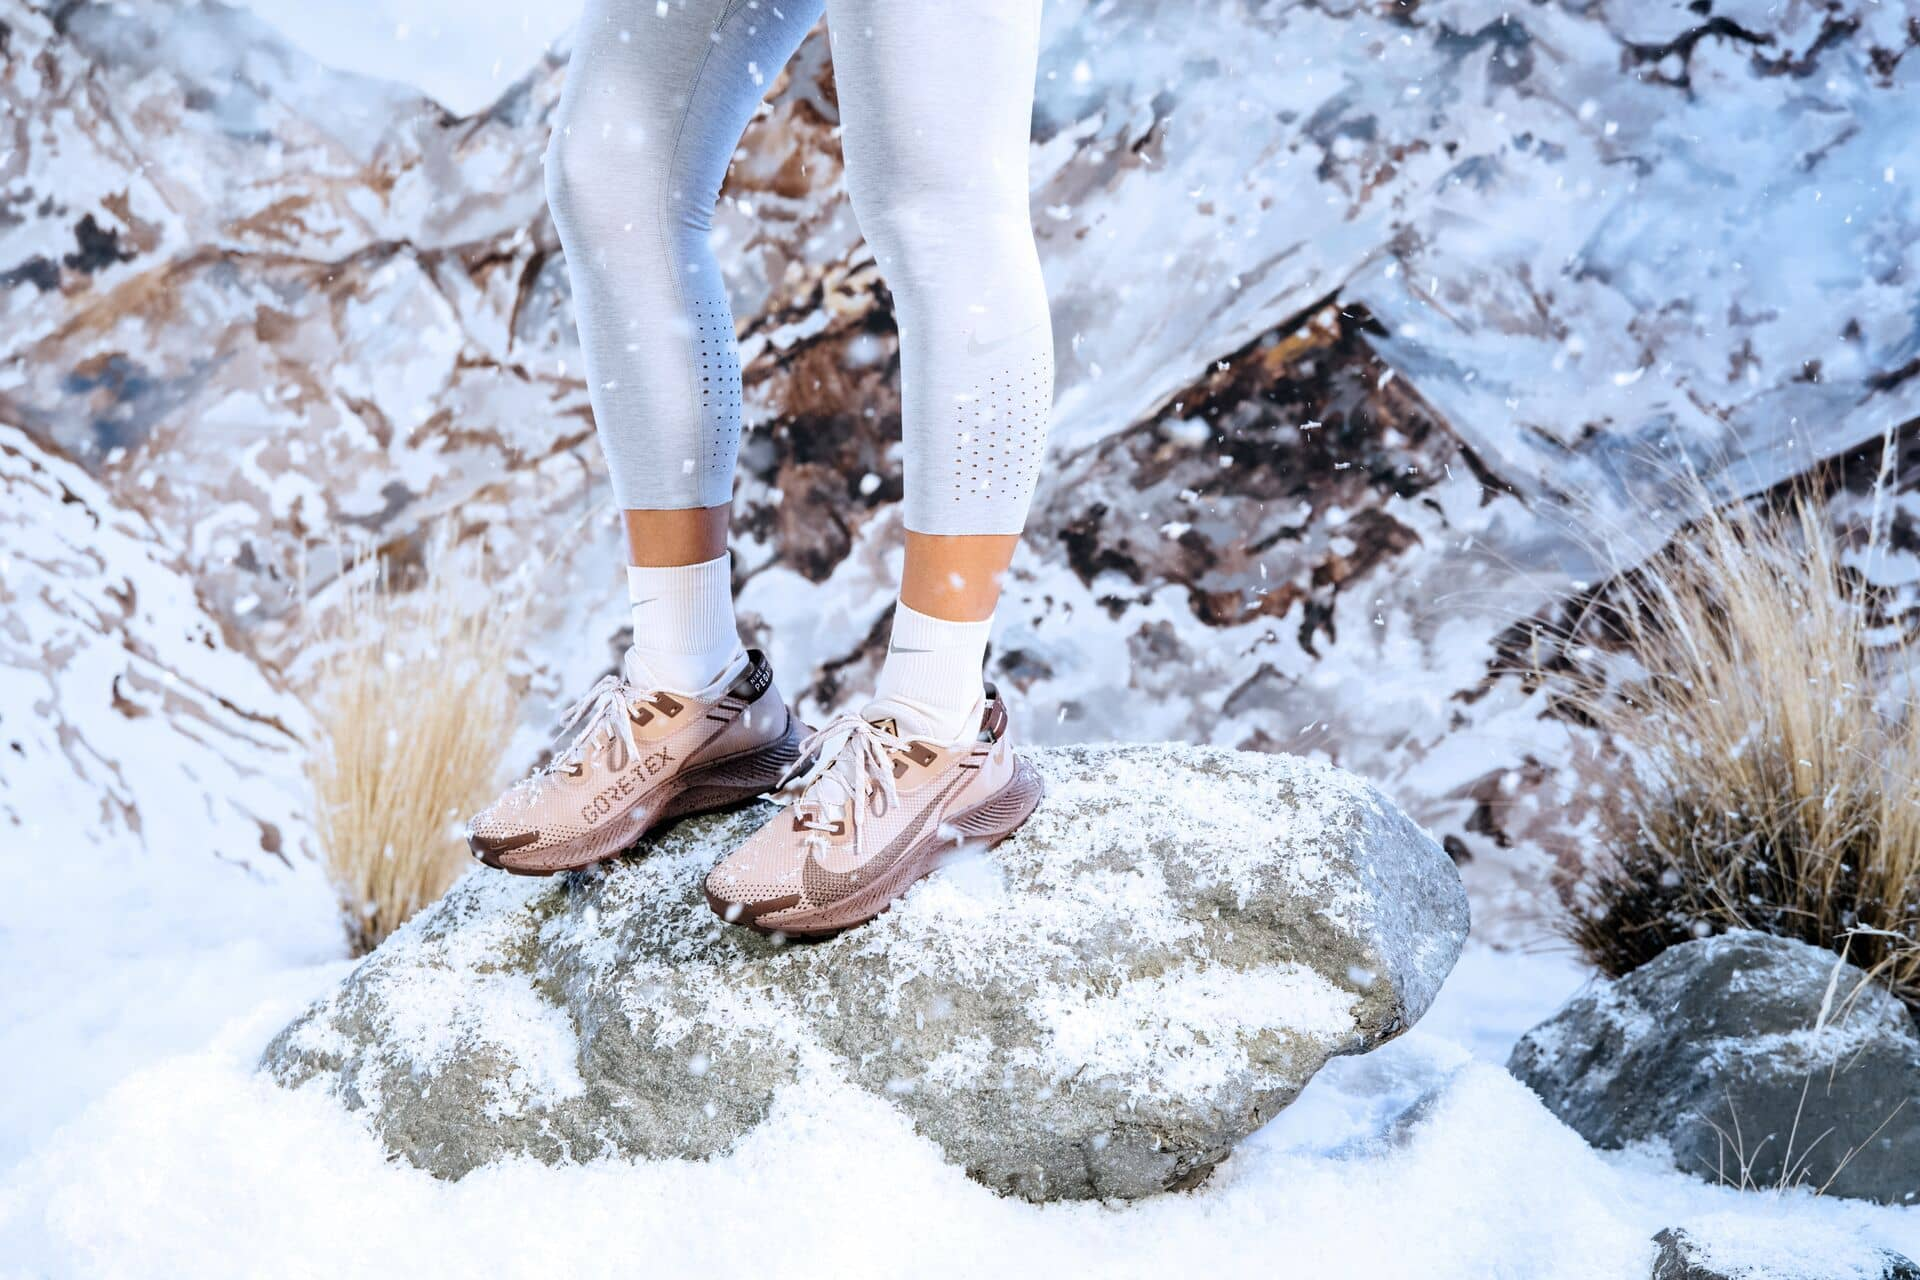 What to Look for When Choosing Winter Running Shoes